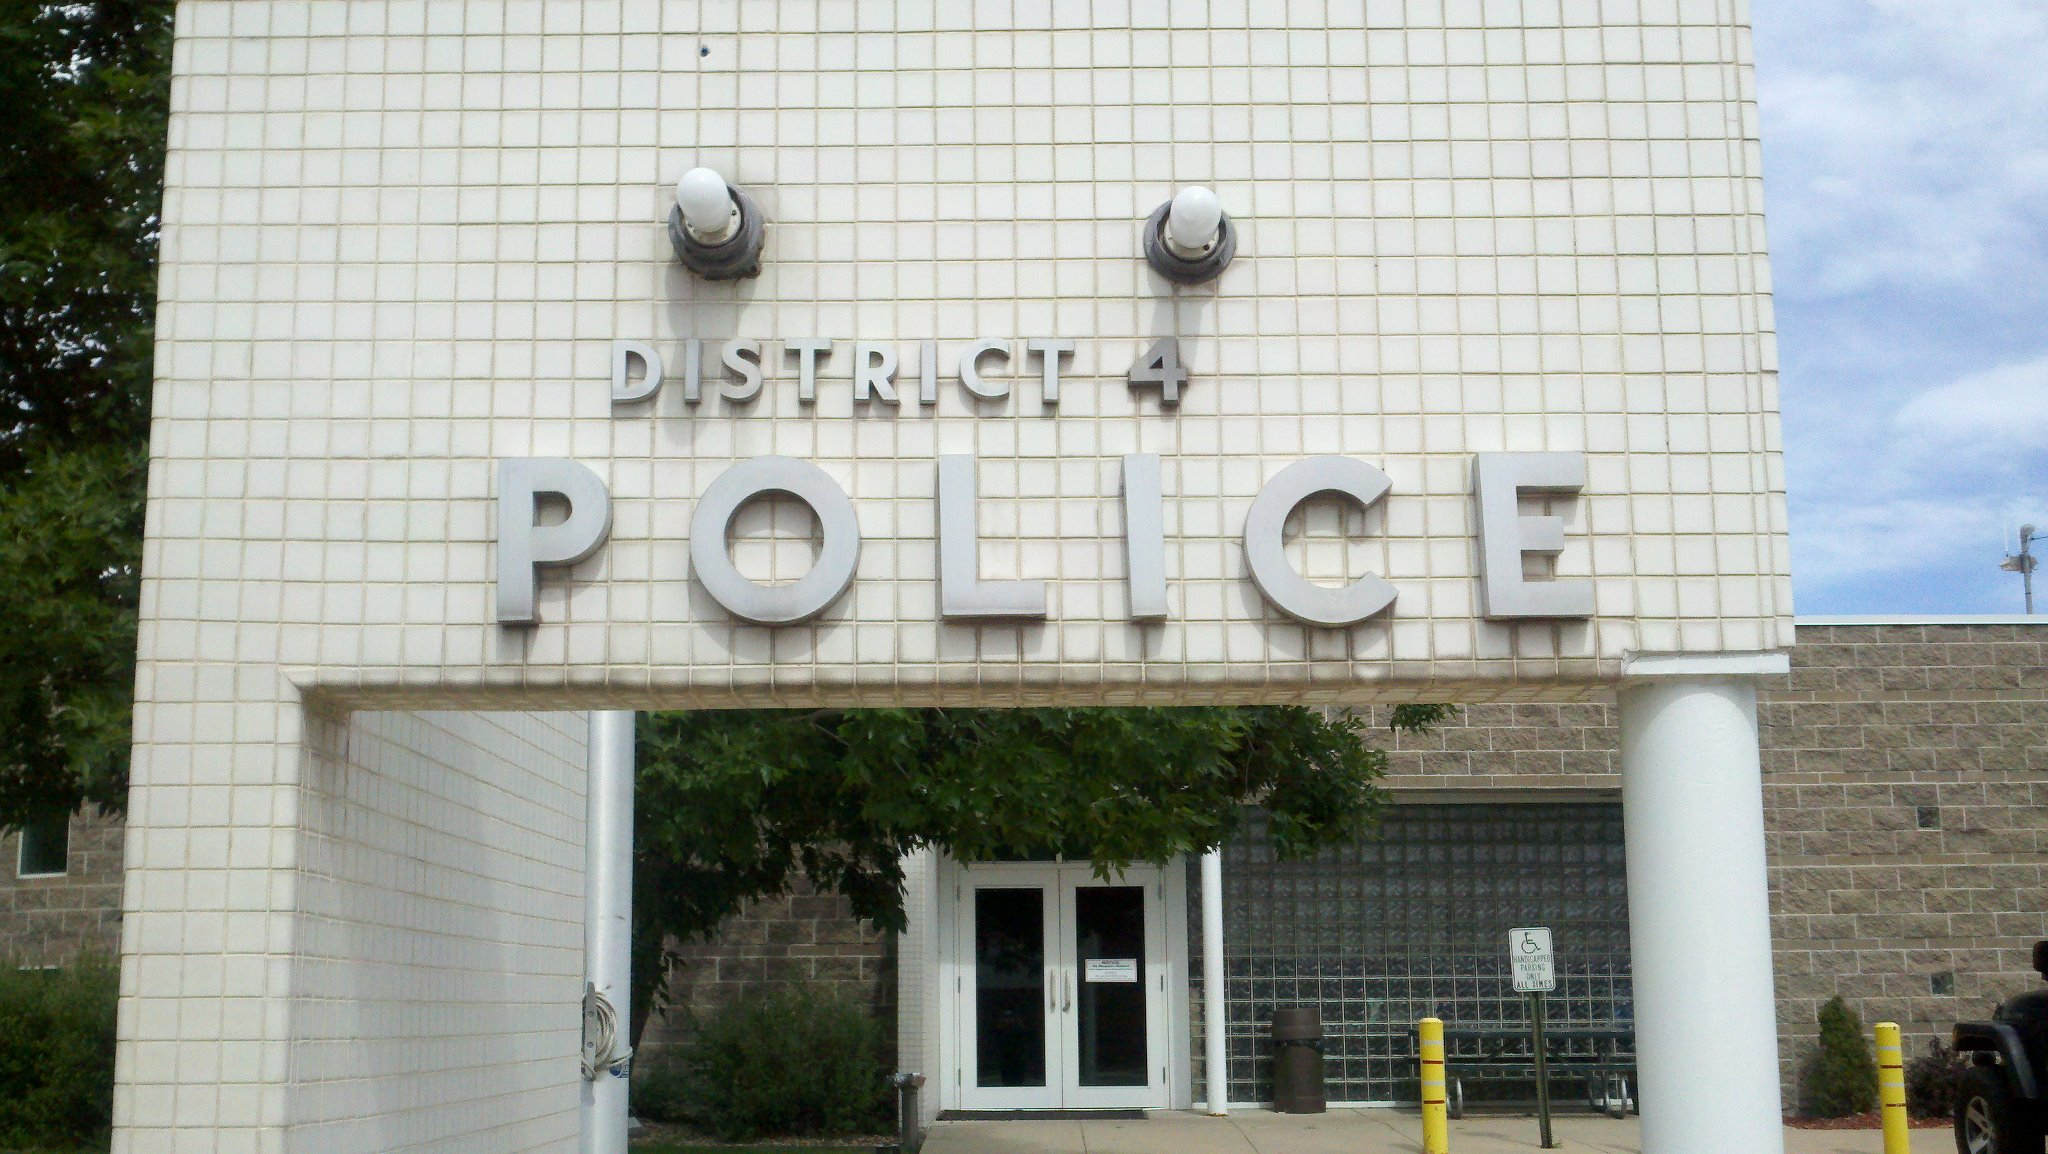 Photo of the entrance to the District 4 Police station